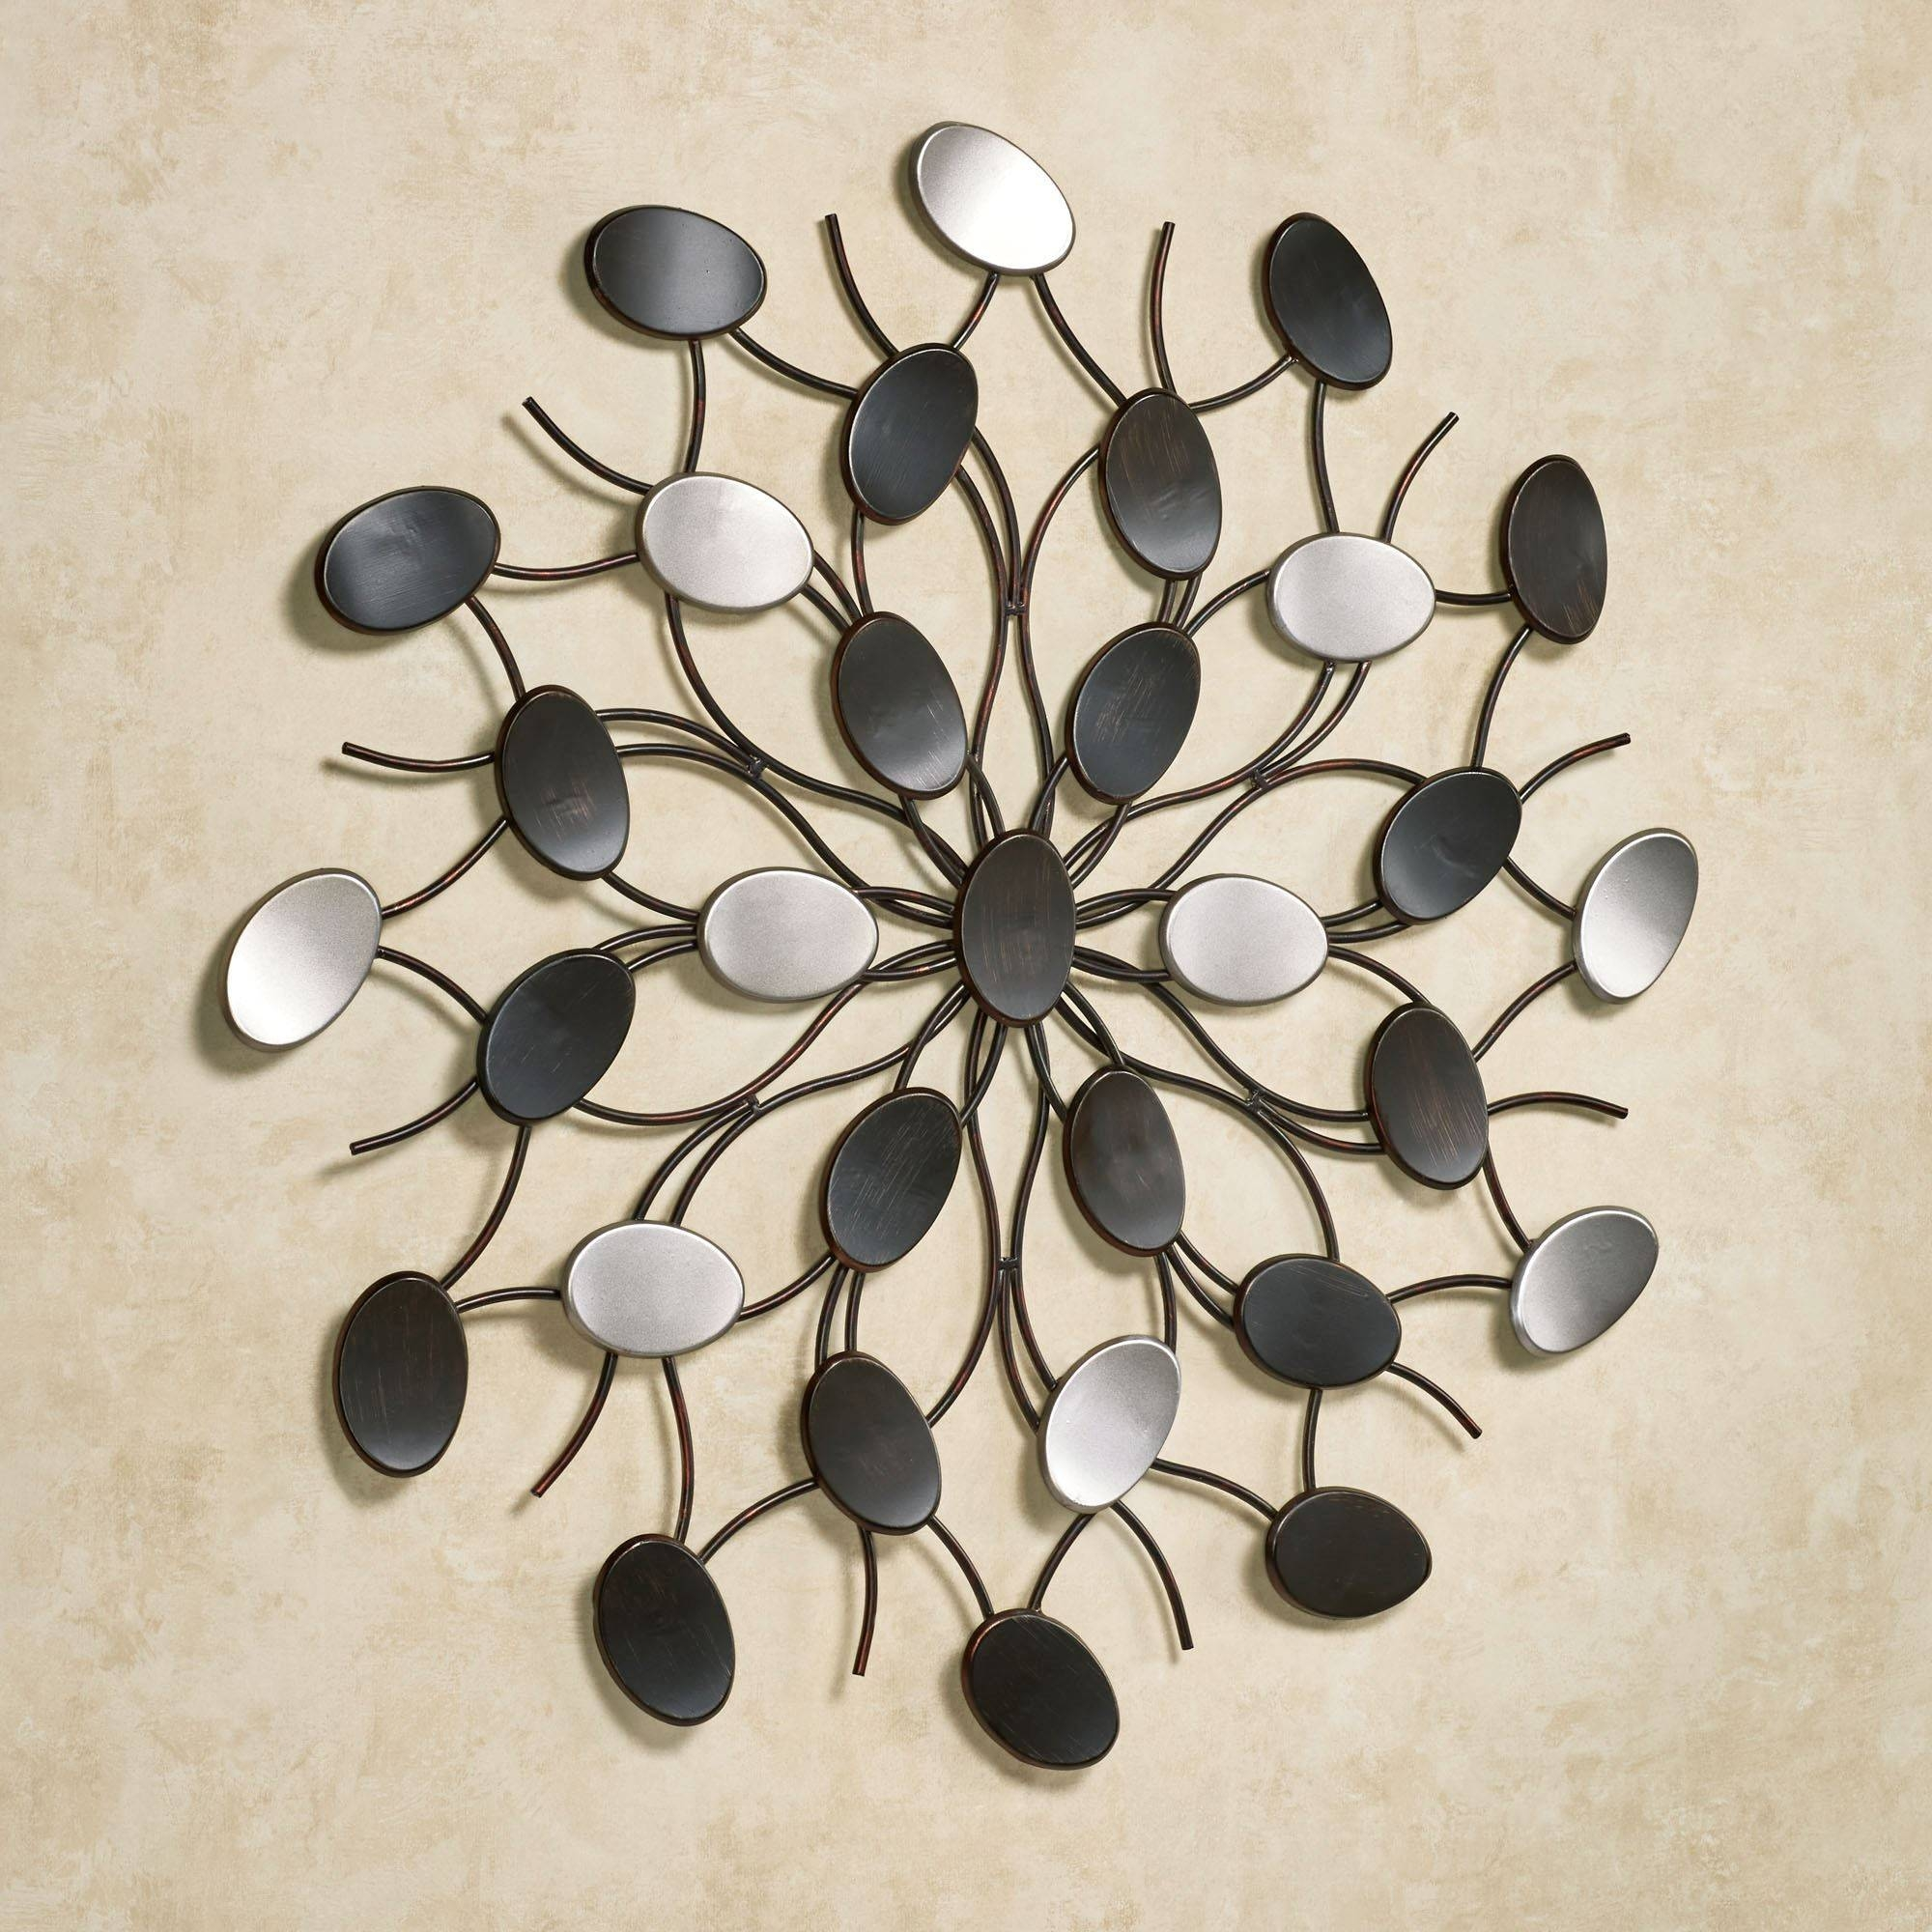 Radiant Petals Abstract Metal Wall Art Intended For Recent Metal Wall Art Circles (View 10 of 20)